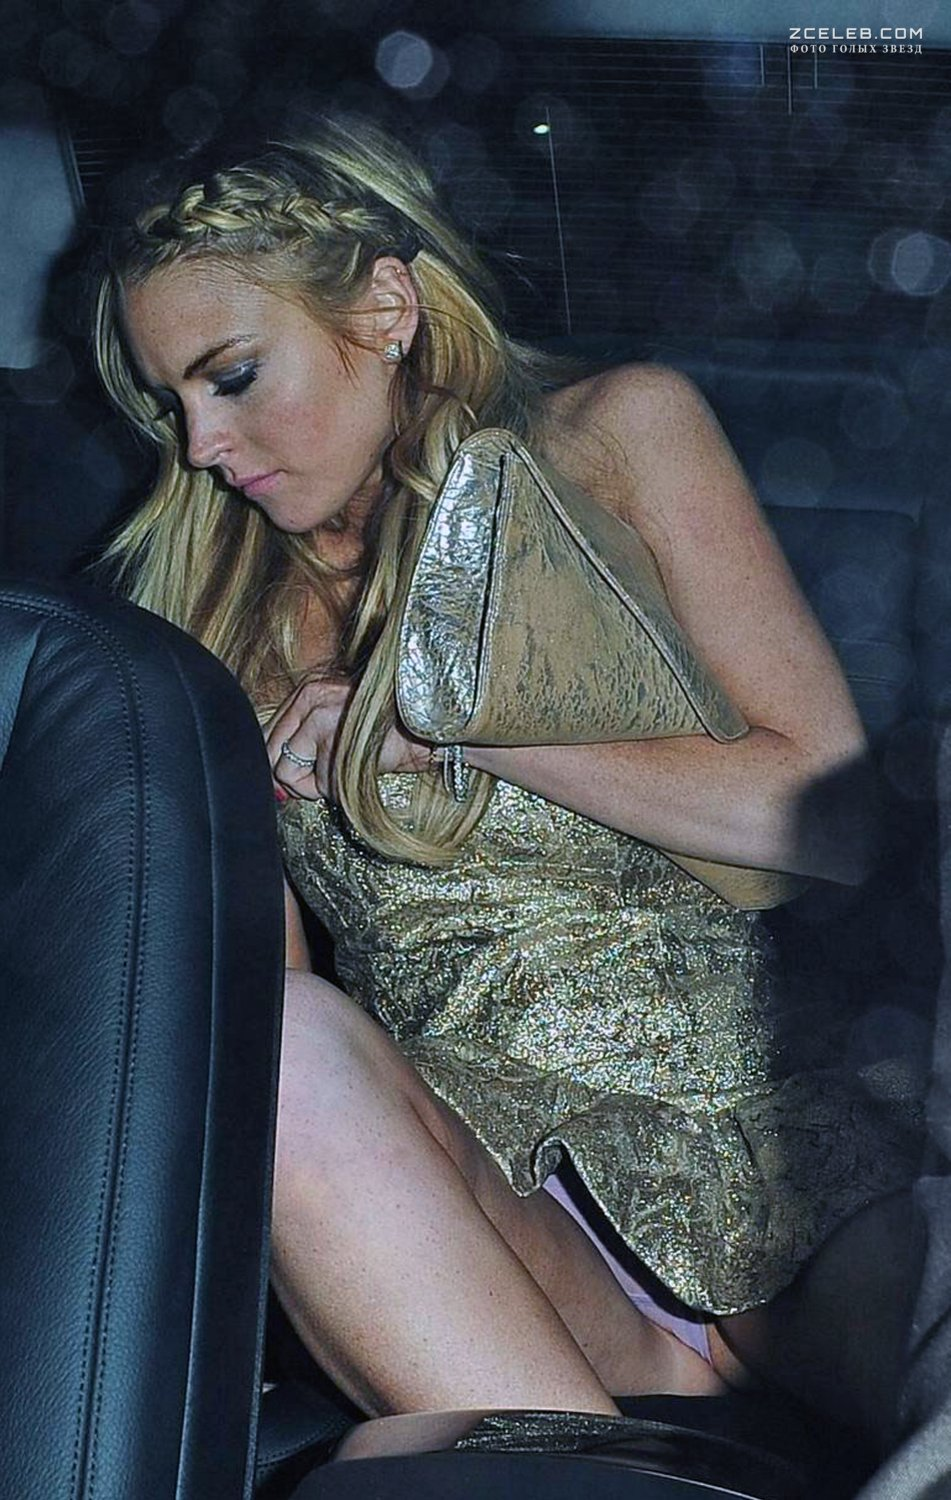 Lindsay lohan pussy slip, girls go naked showing pussies